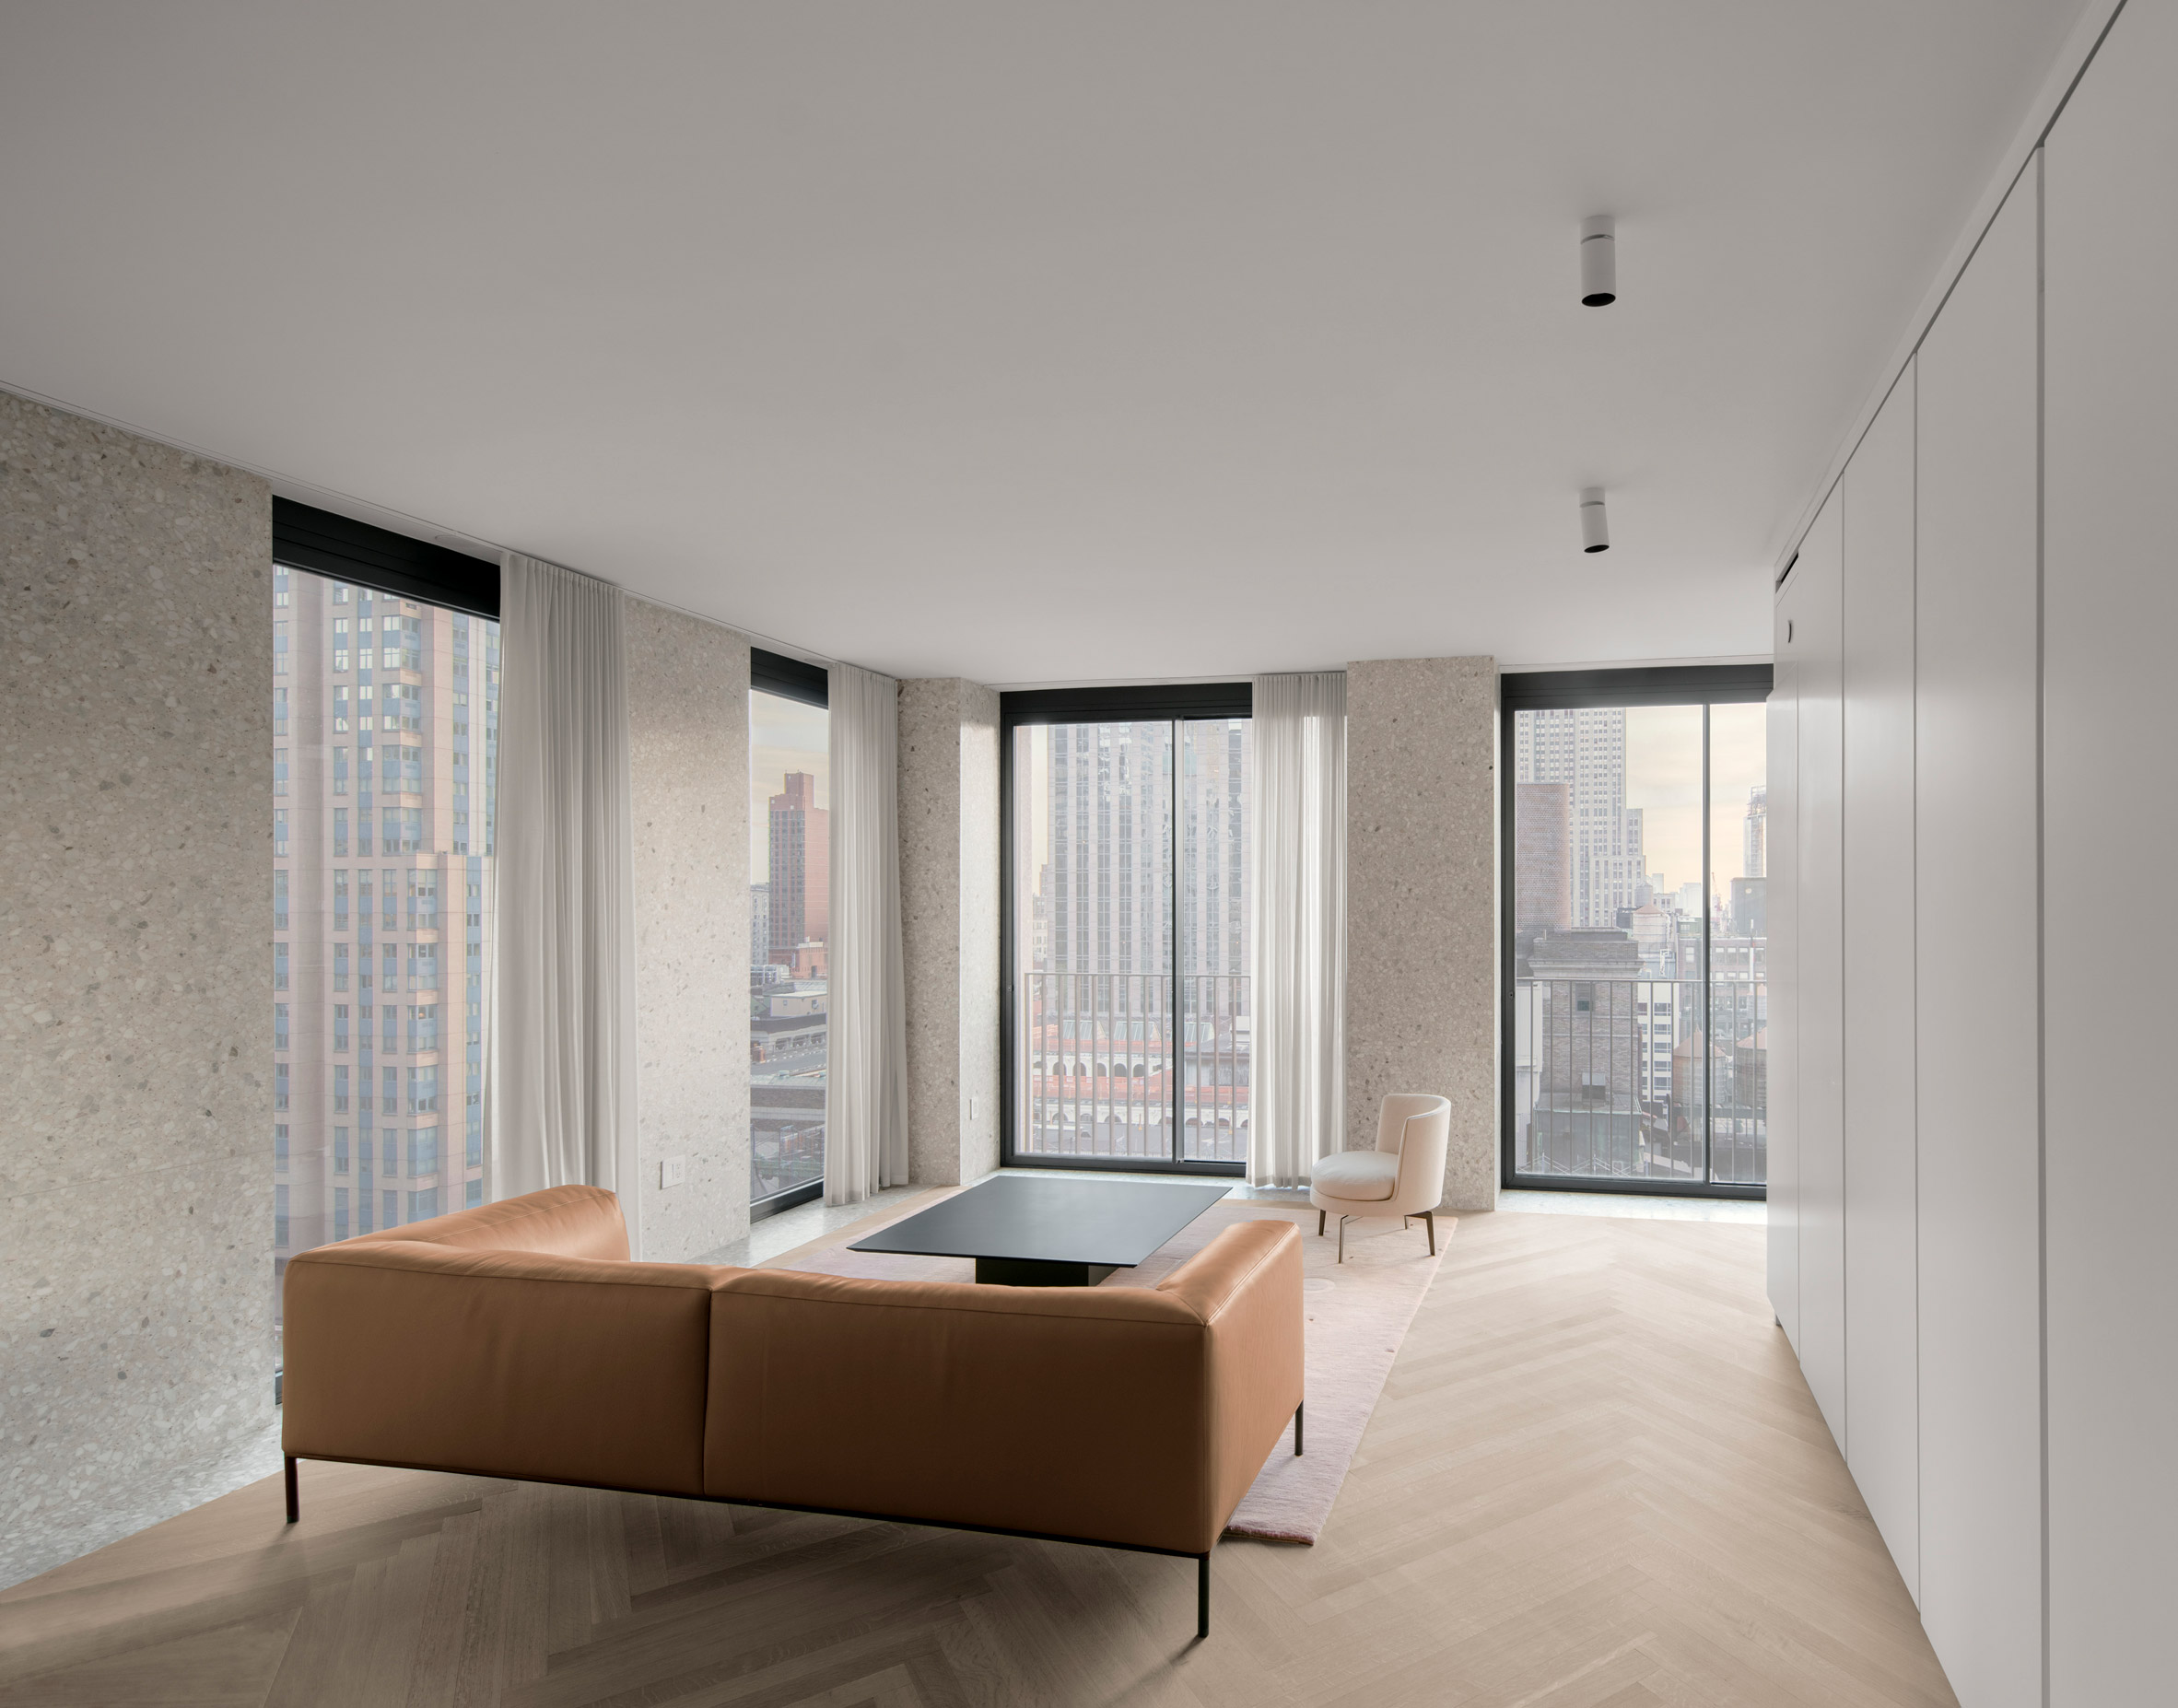 Terrazzo interiors of The Bryant by David Chipperfield